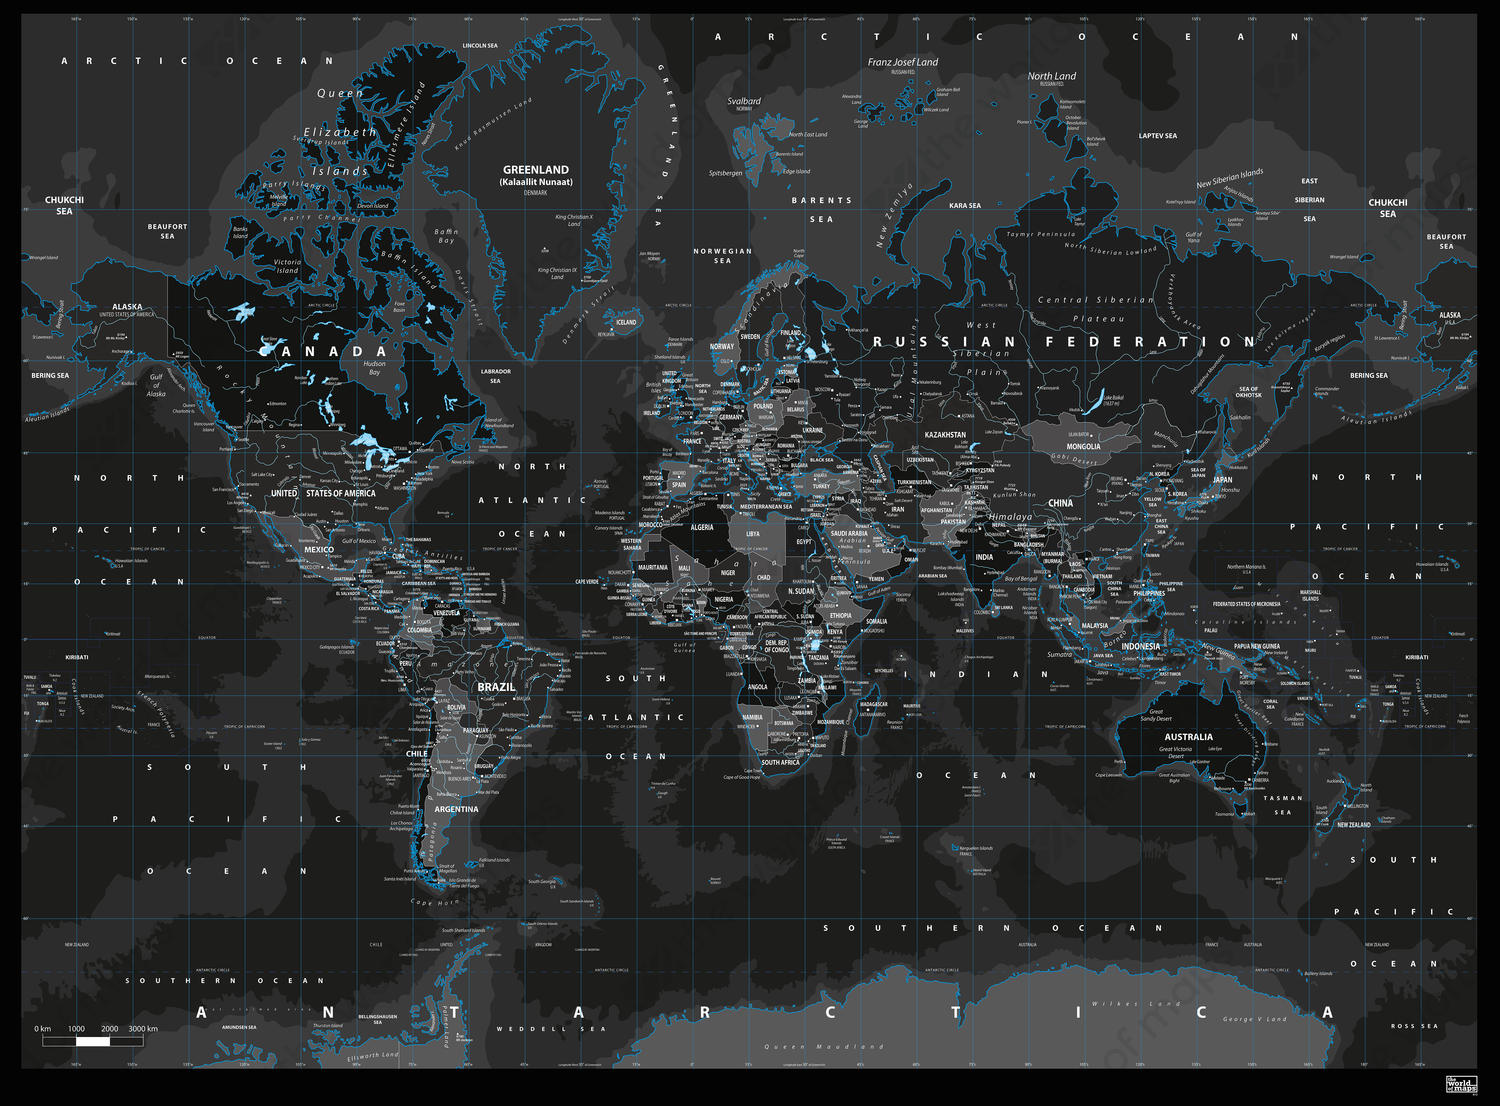 Digital Map Of The World.Digital World Map Black Ice 812 The World Of Maps Com